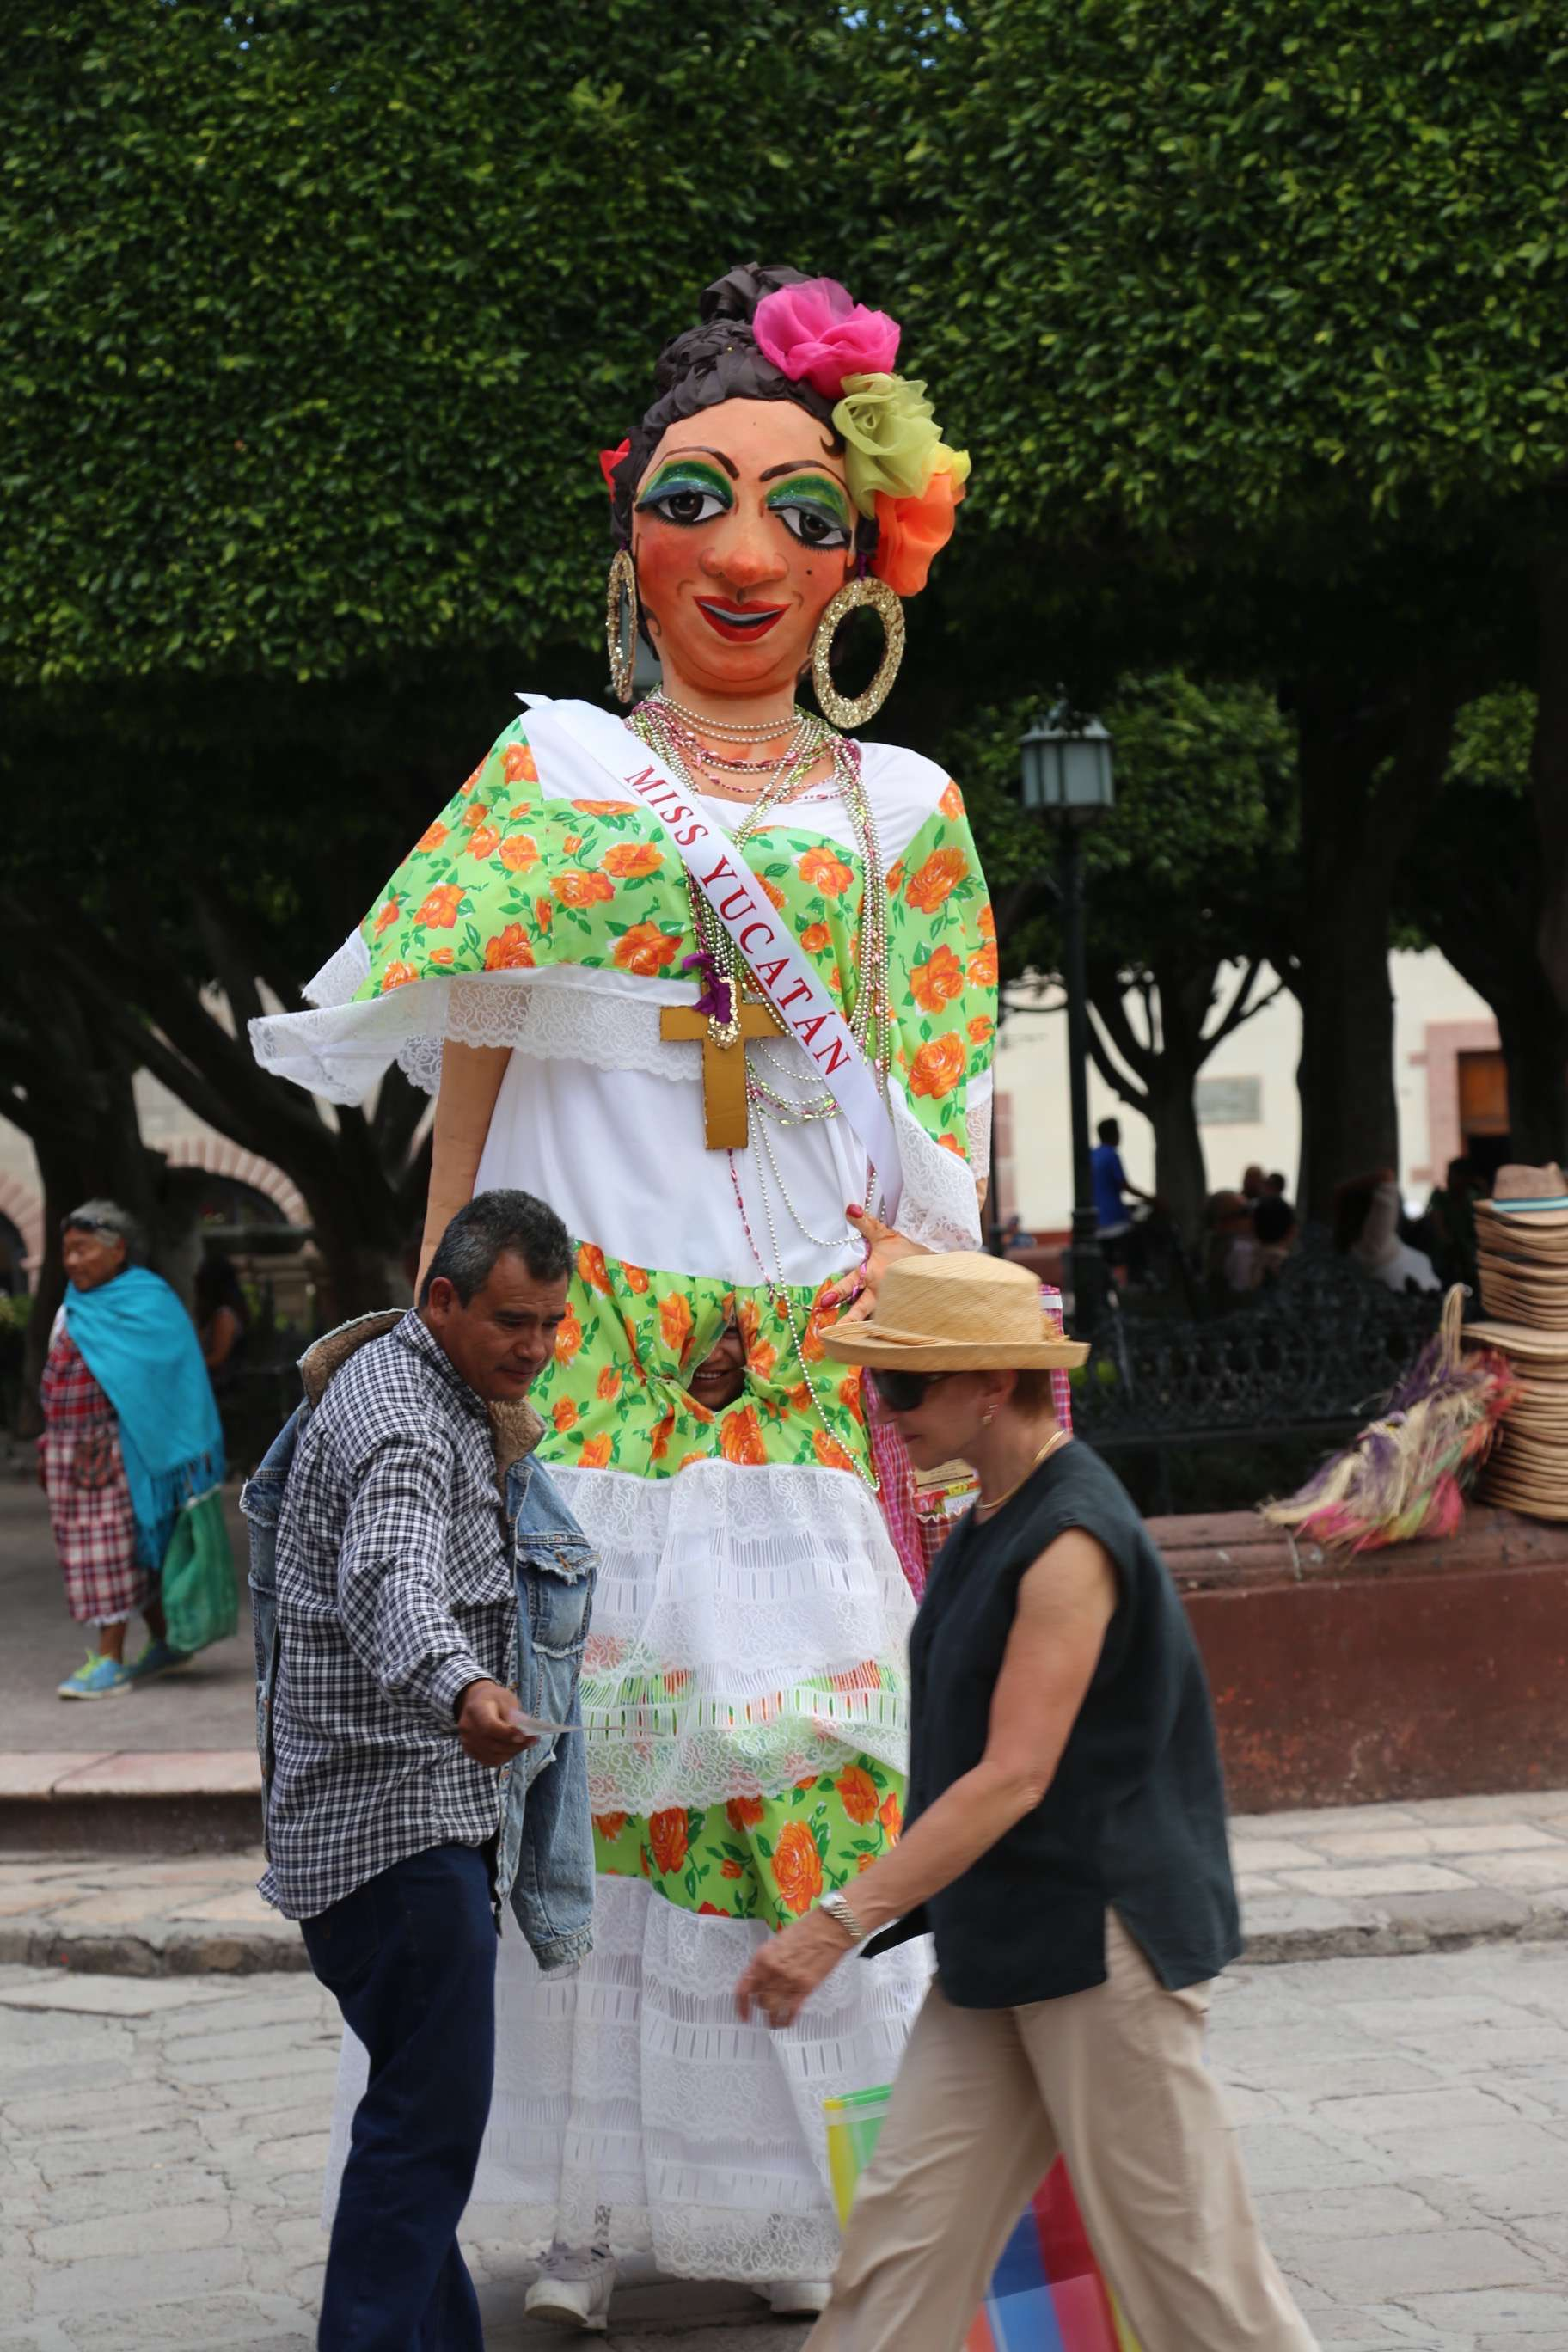 Often found in El Jardin, these 'dolls' pose for pictures with tourists.